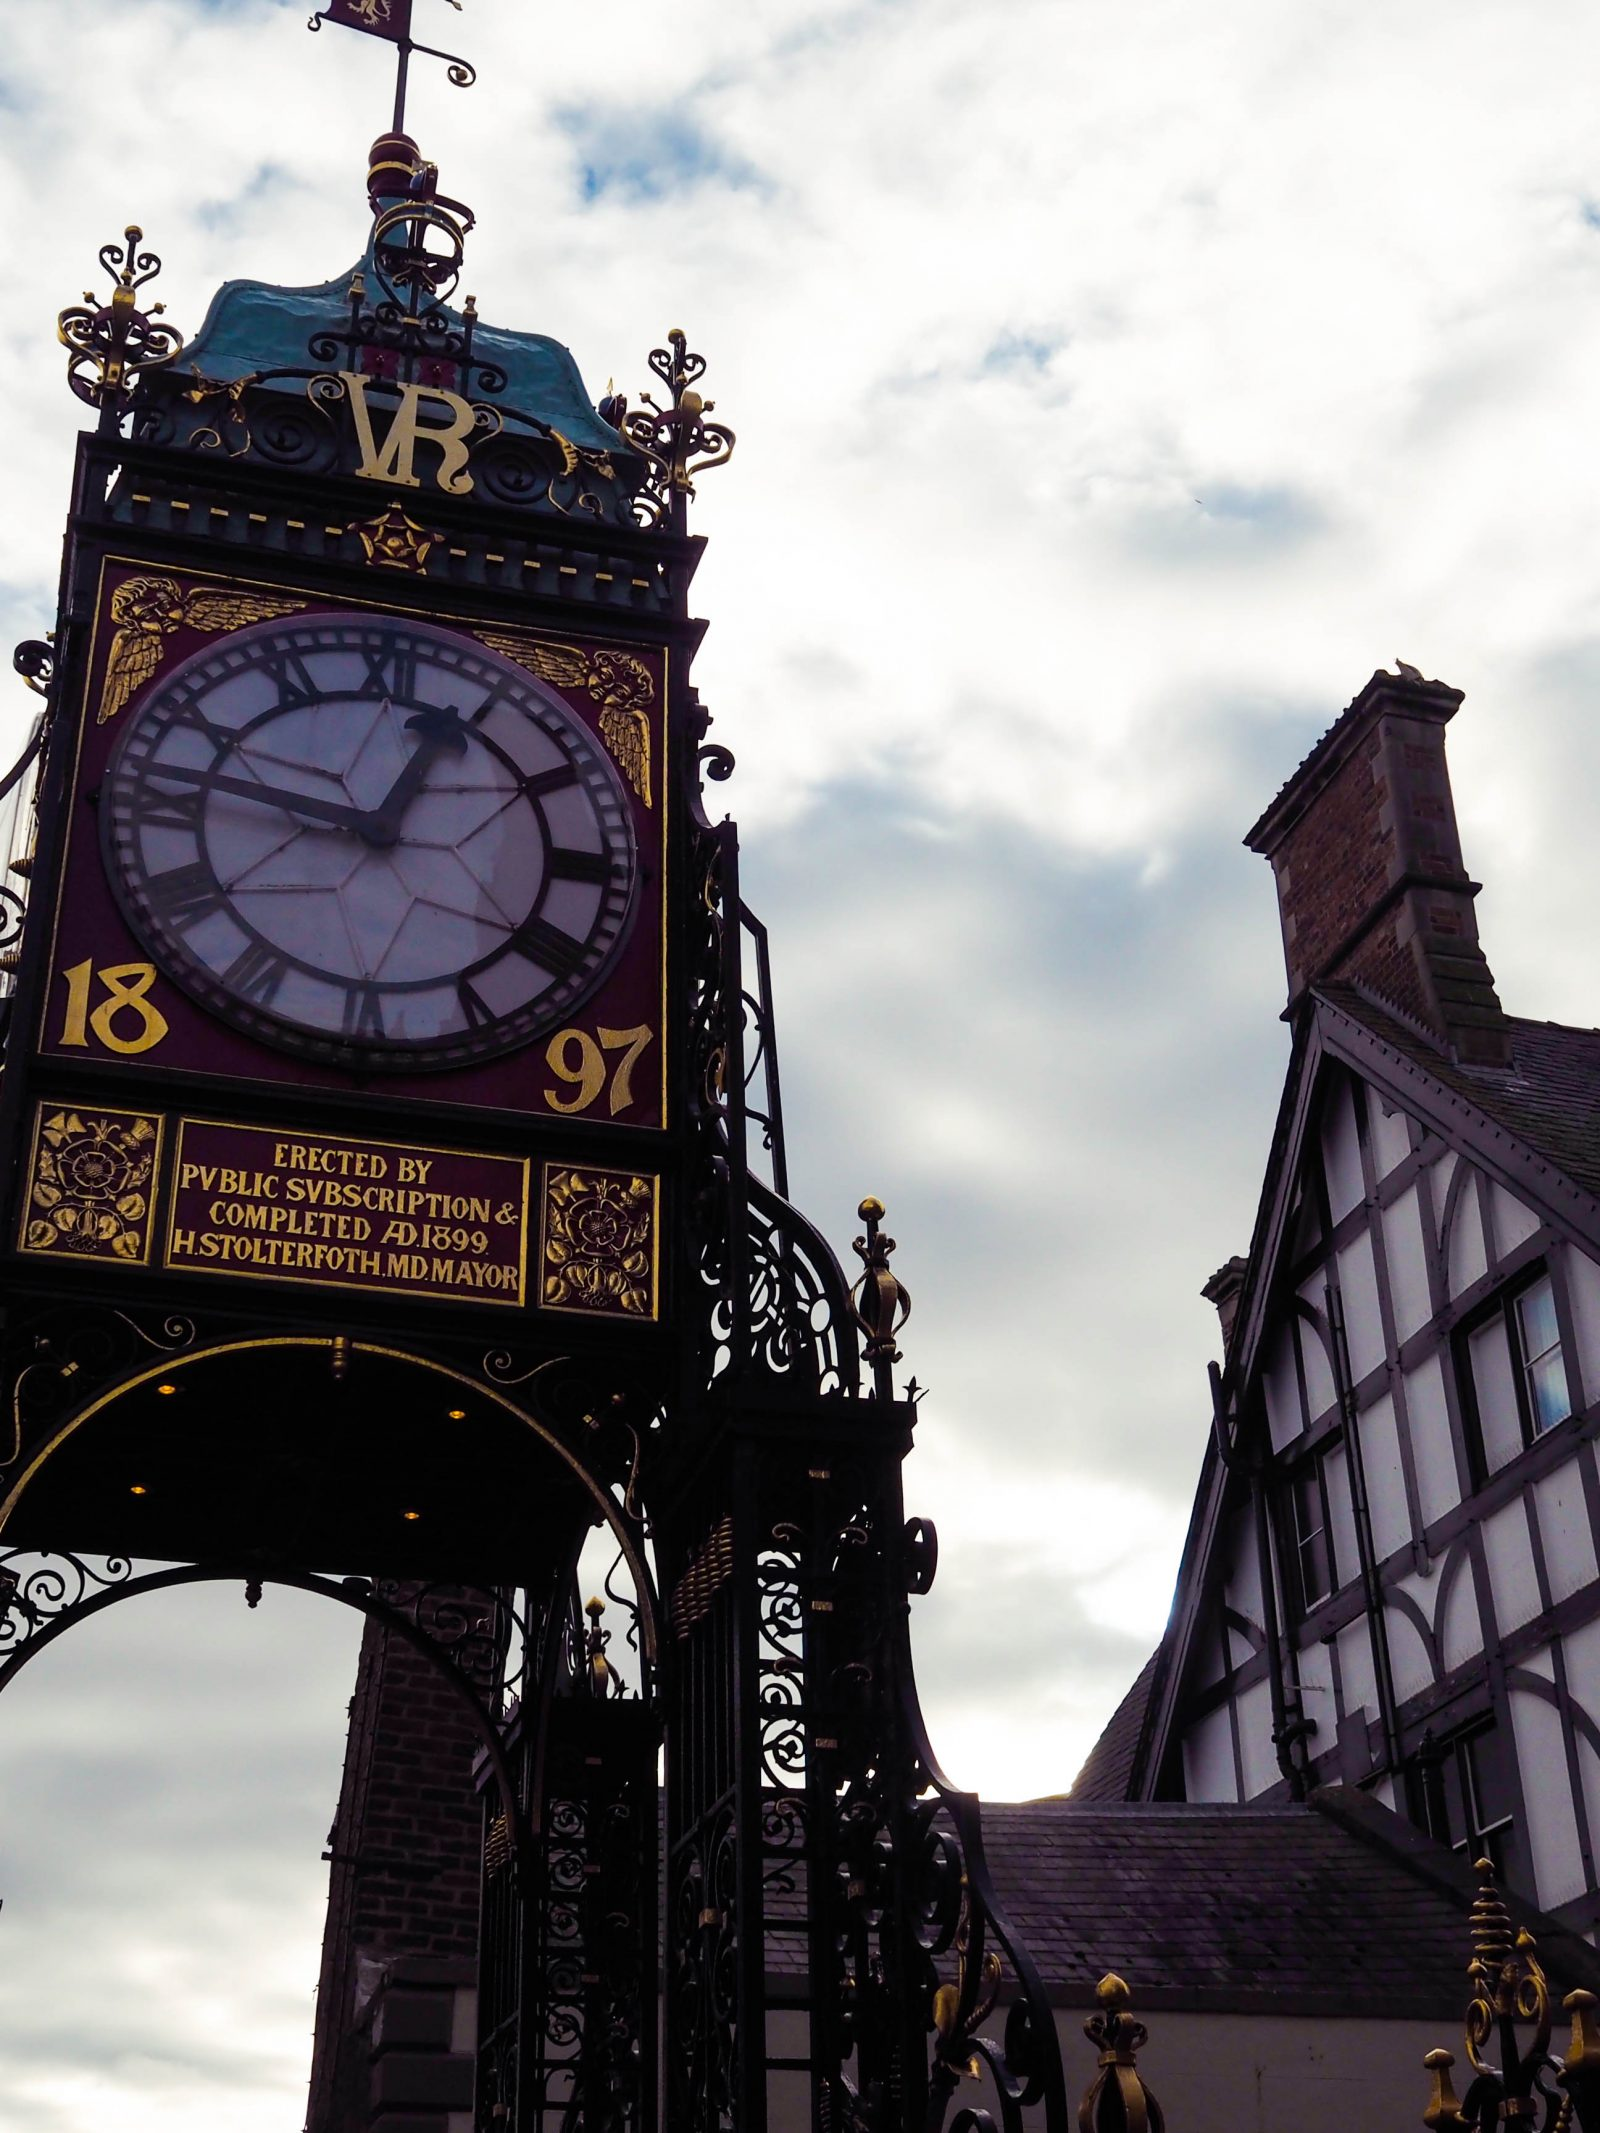 weekend in chester in photos | rhianna olivia